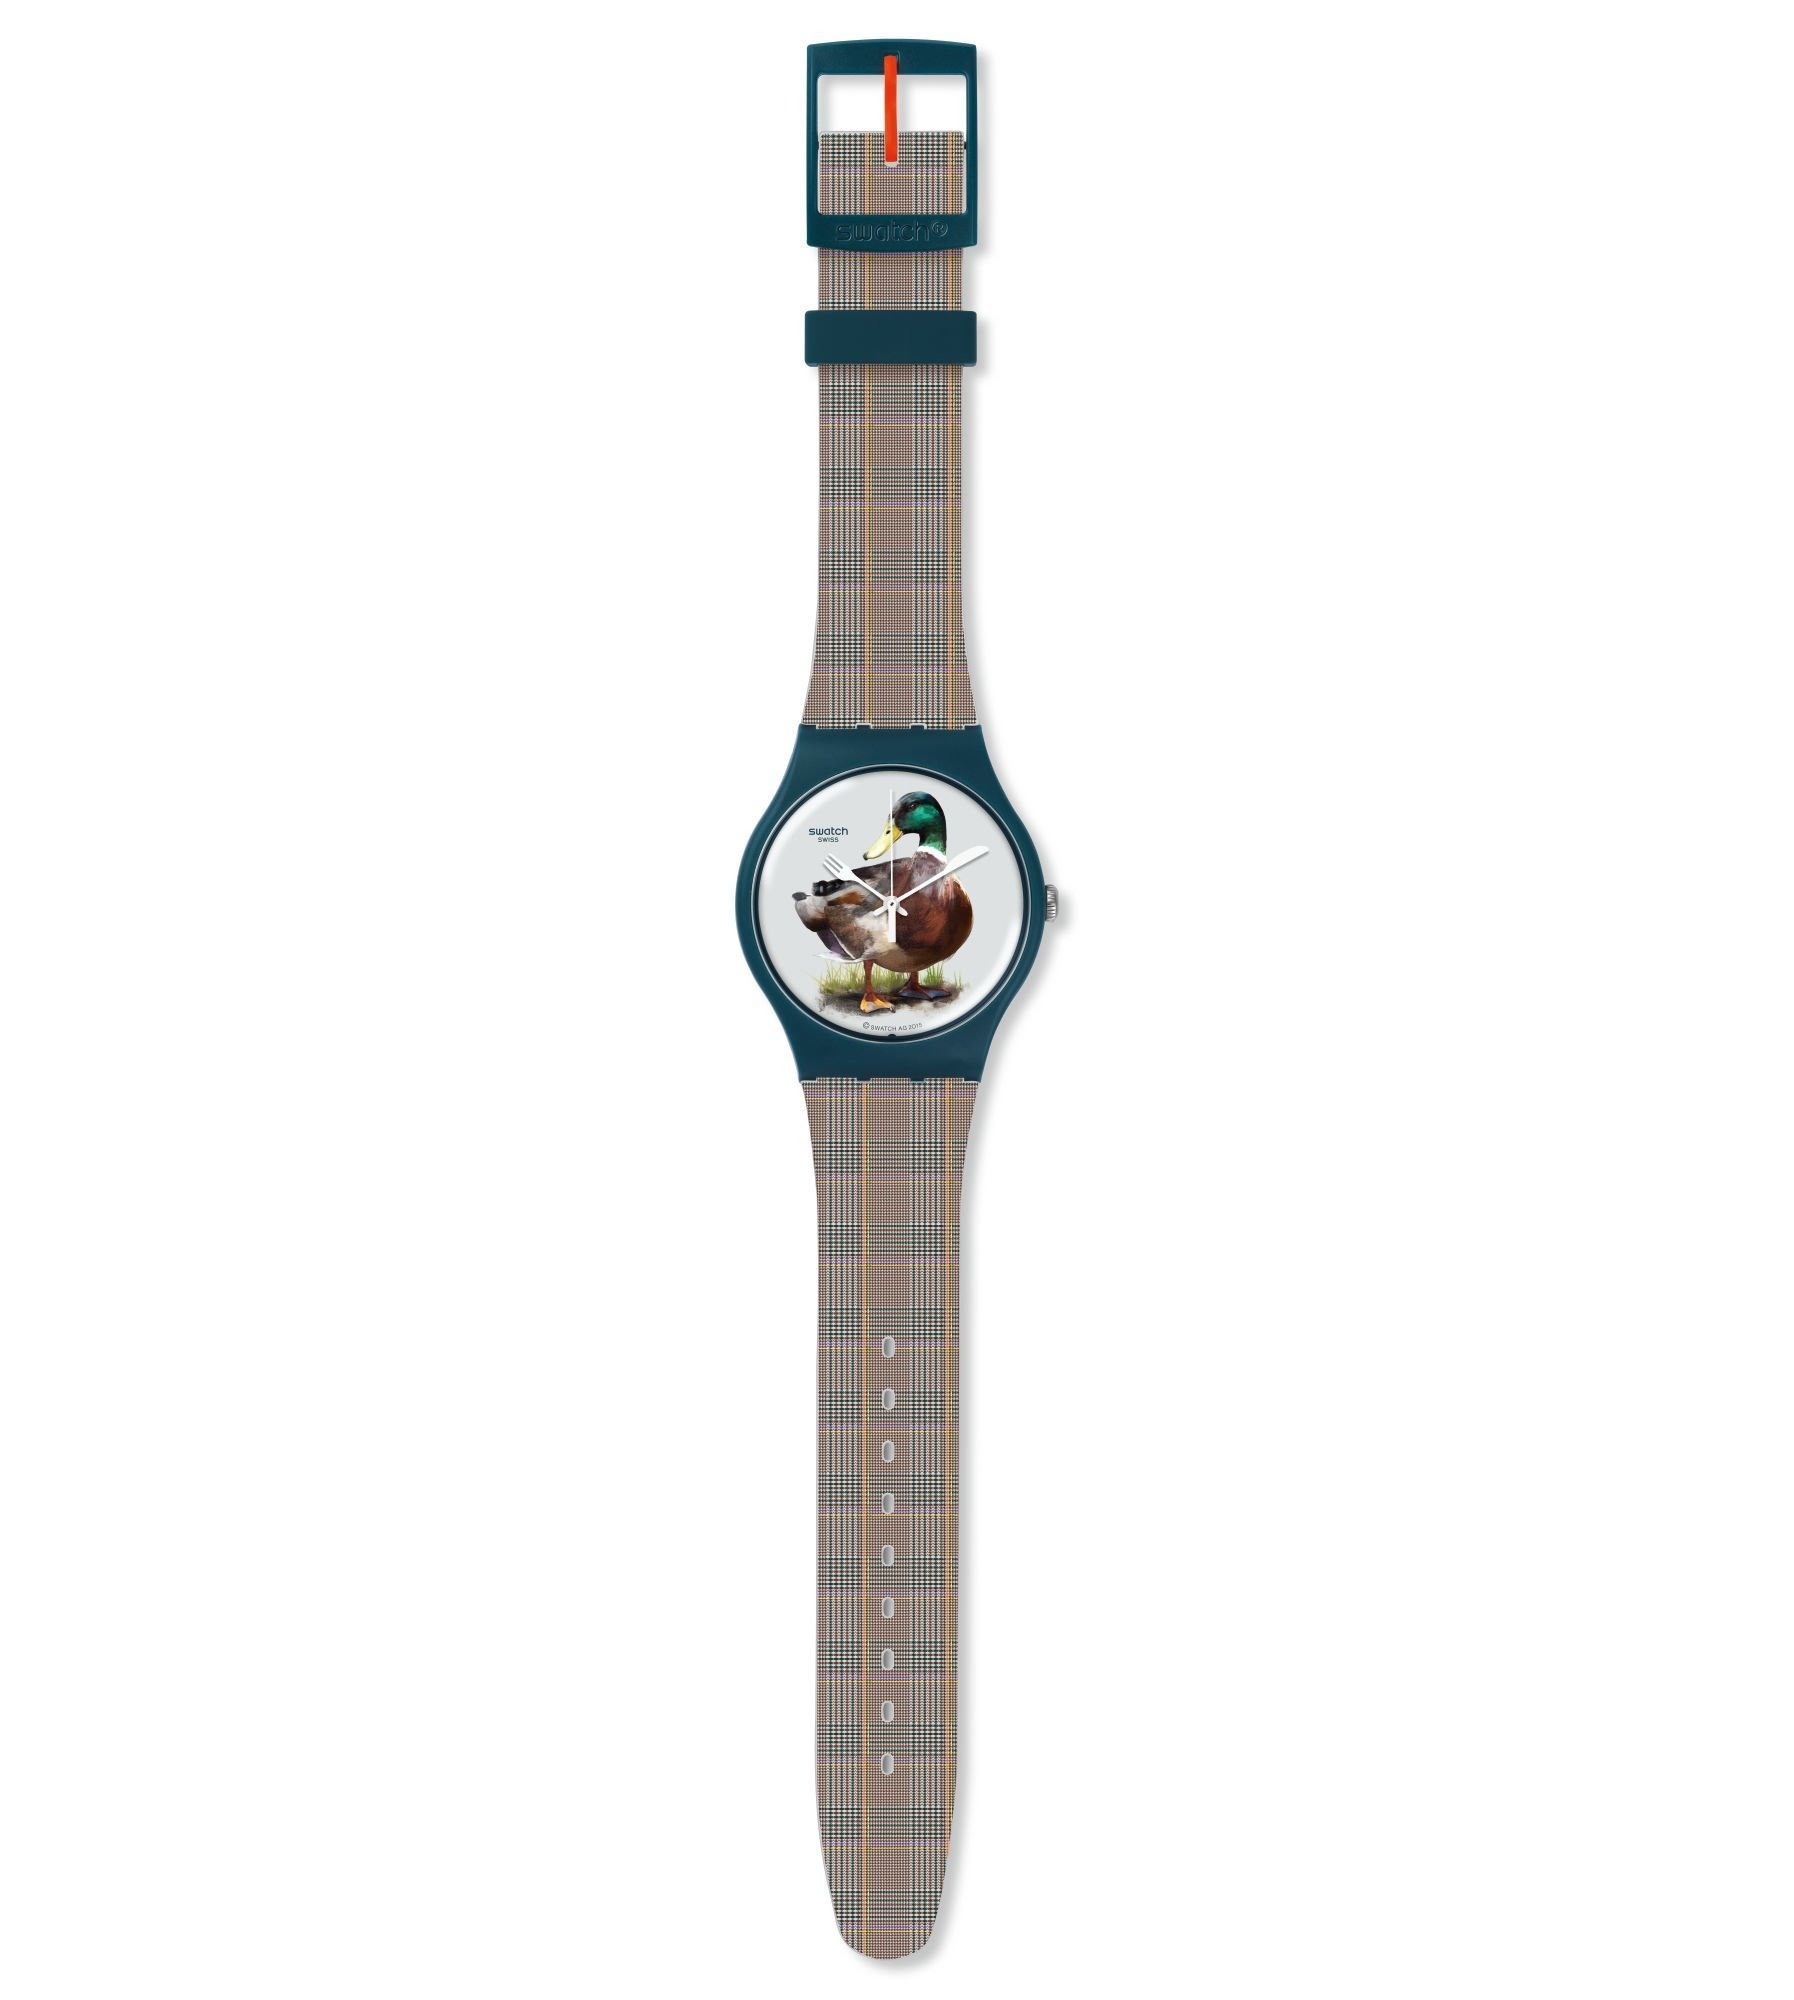 chasy-swatch-zhenskie_ (25)